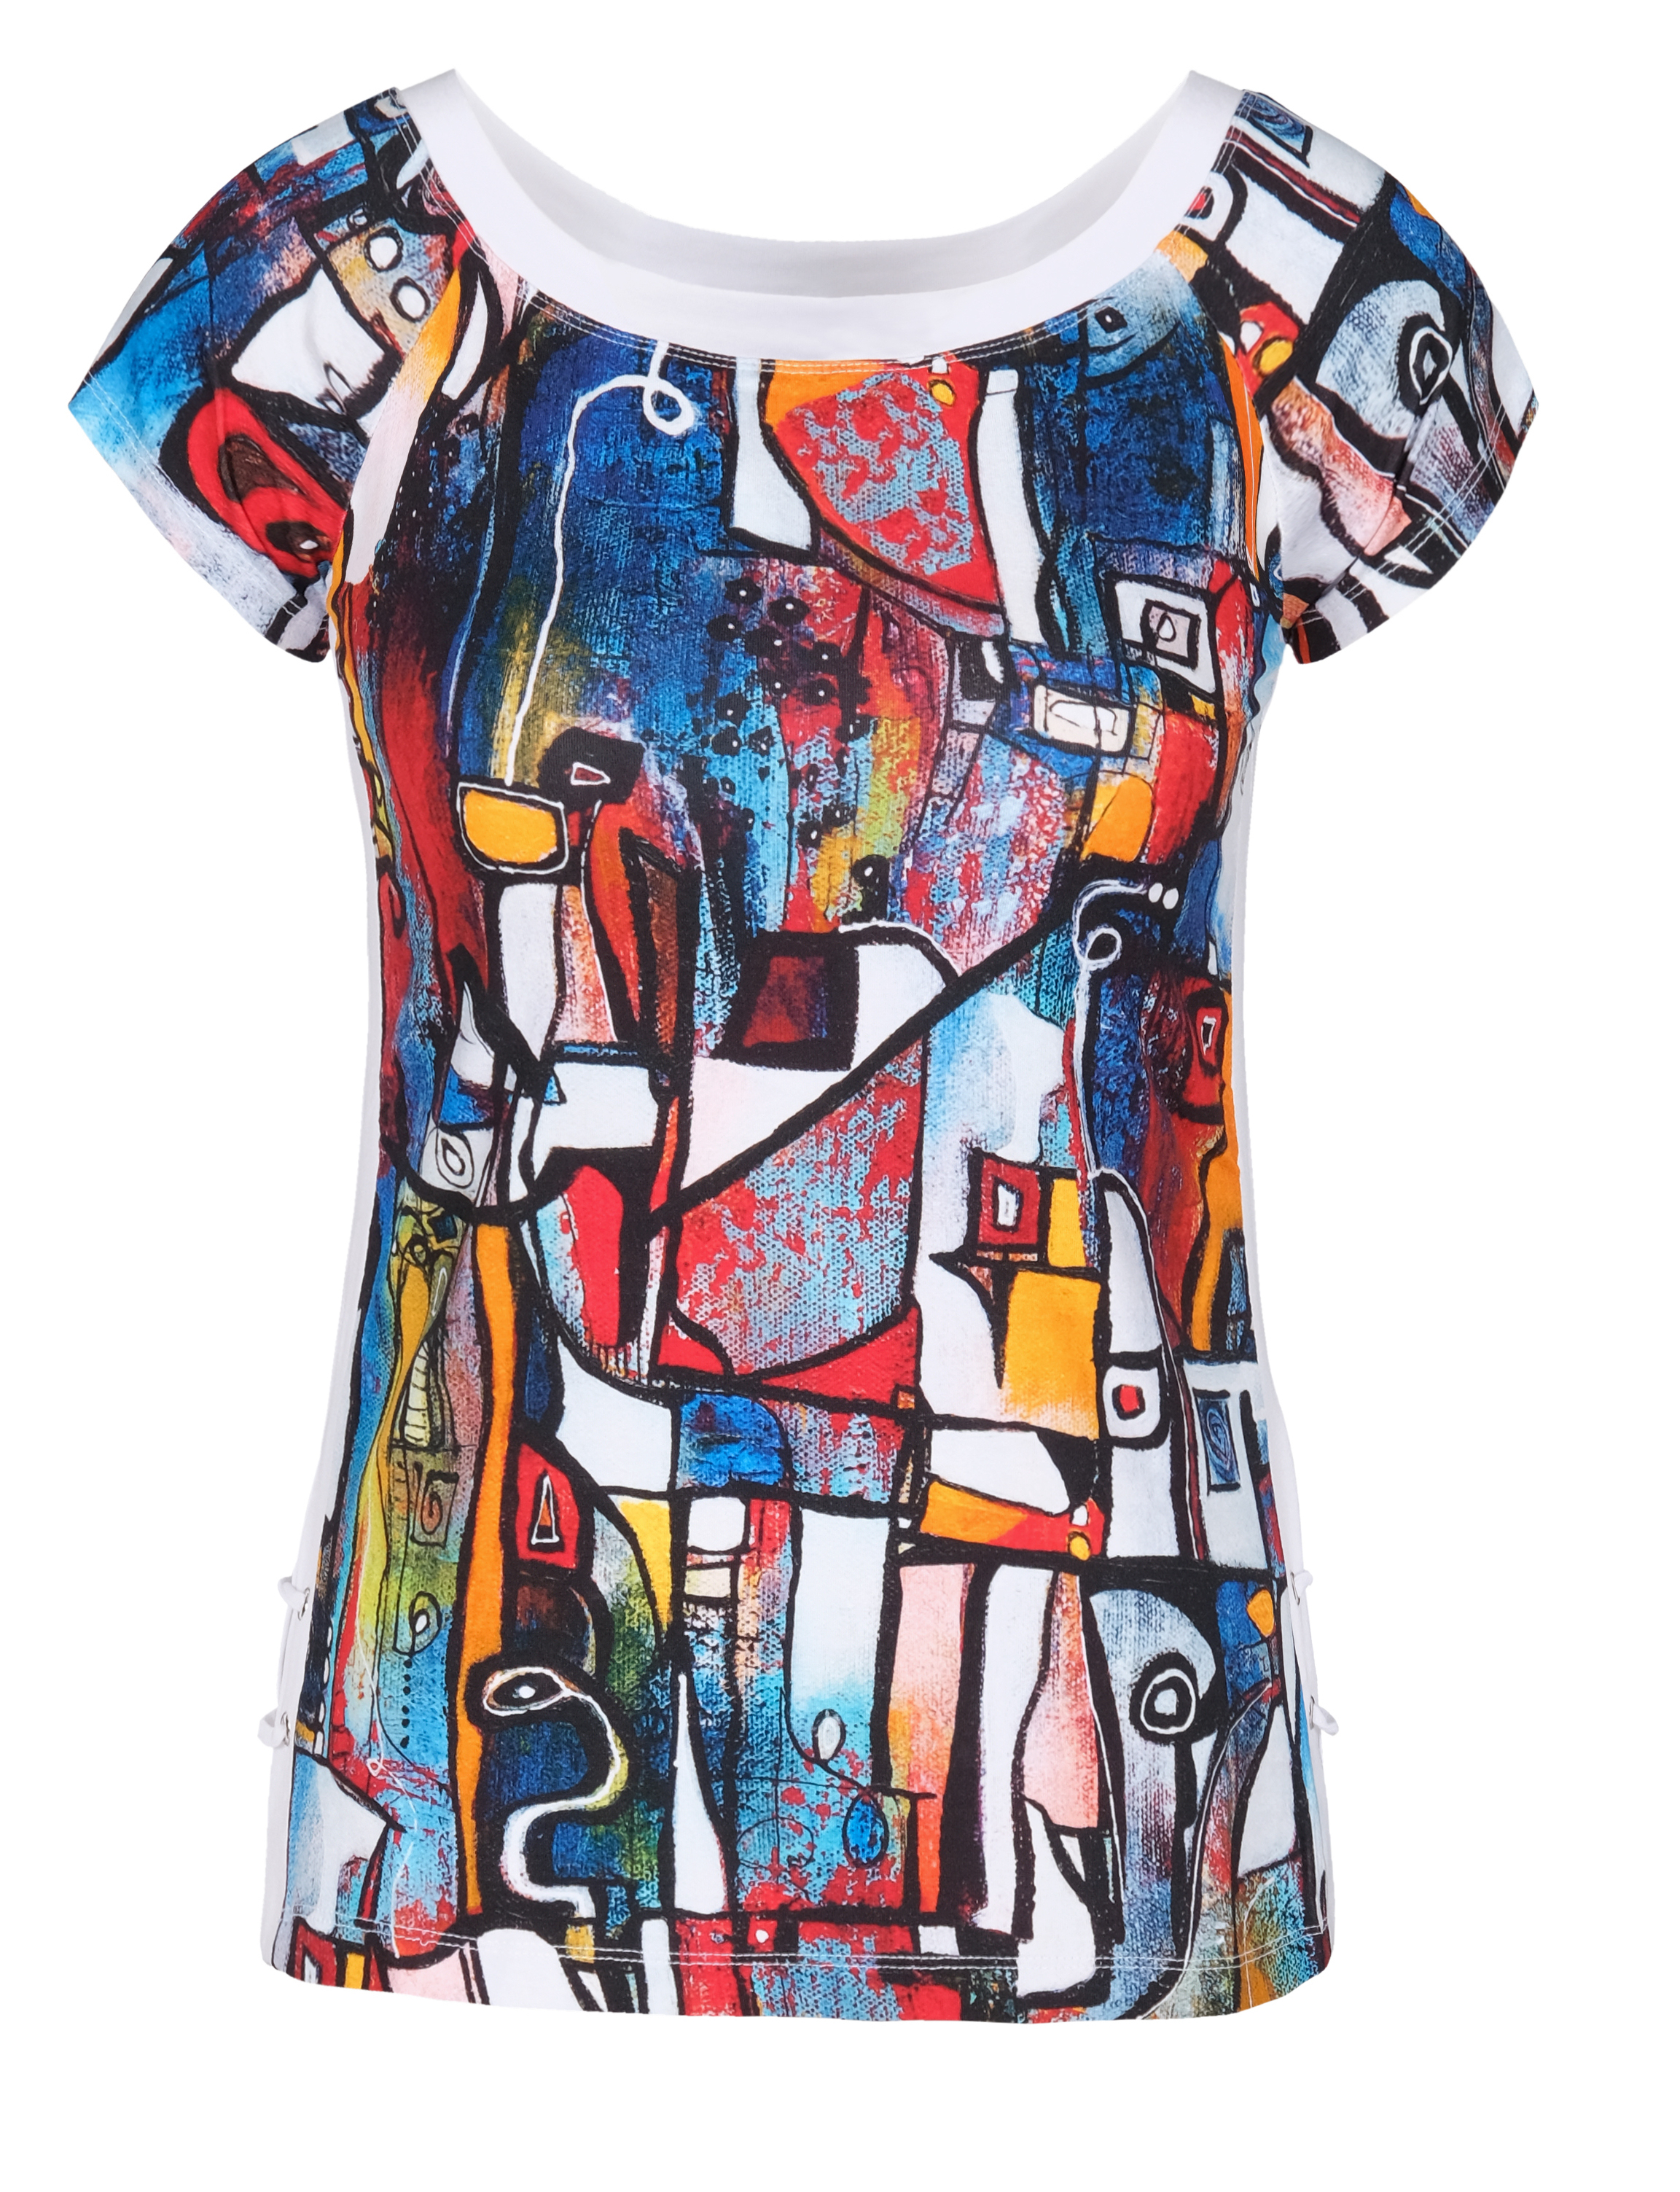 Simply Art Dolcezza: It's Complicated Crazy Cool Abstract Art Portrait Neck Top (2 Left!) Dolcezza_SimplyArt_21711